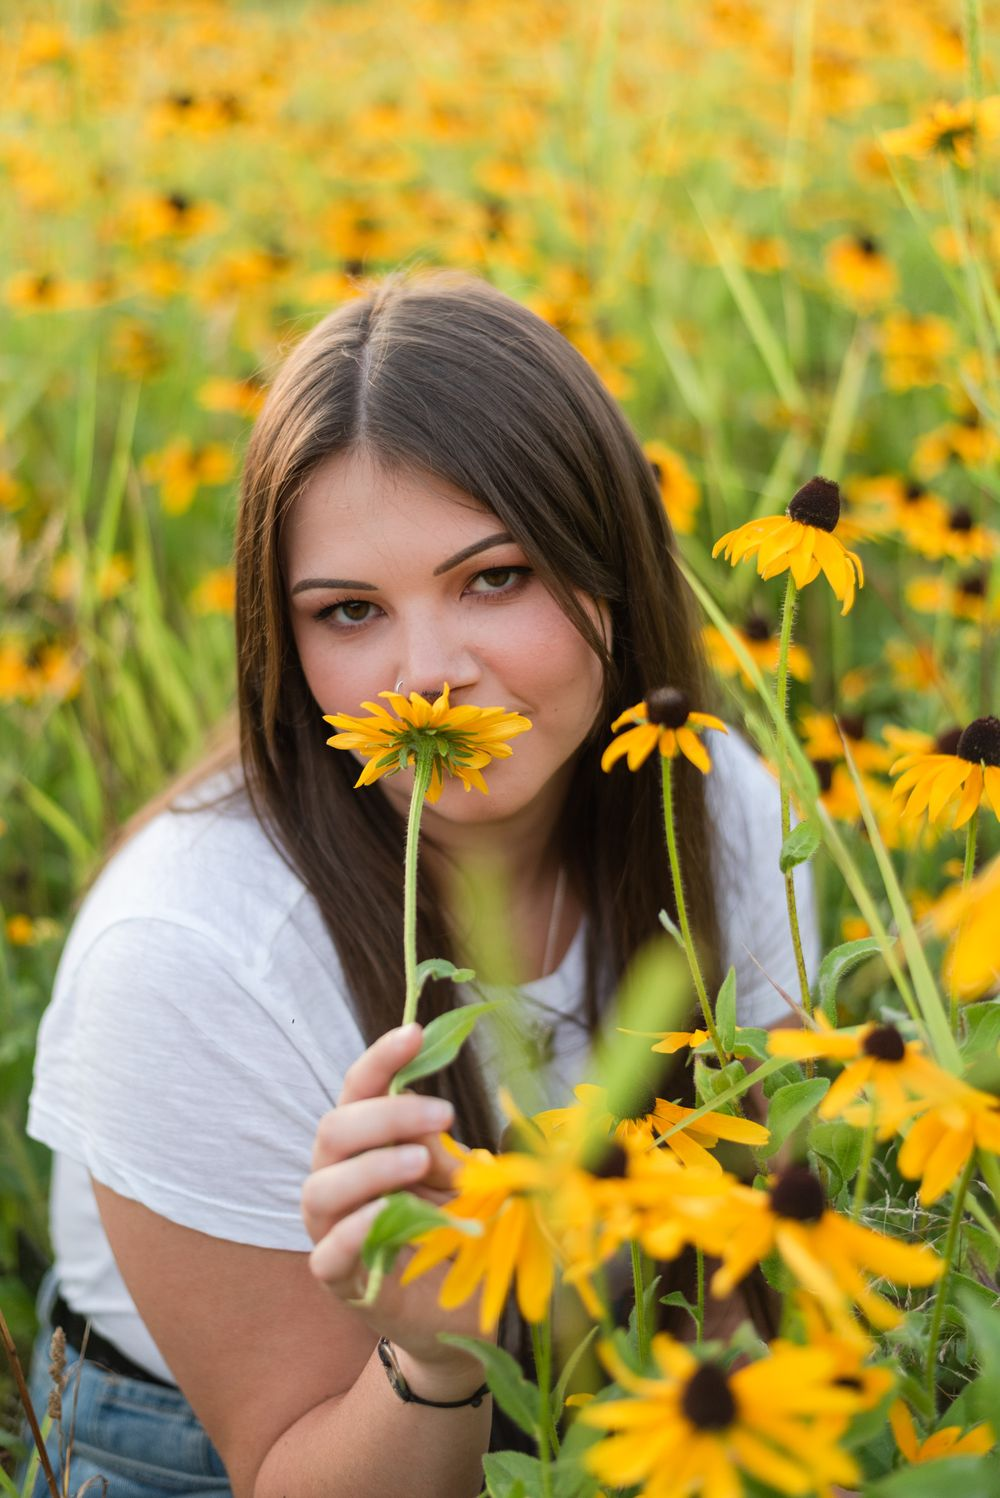 High school senior sitting in flower patch in golden sunlight at Hartwood Acres in Pittsburgh Pennsylvania